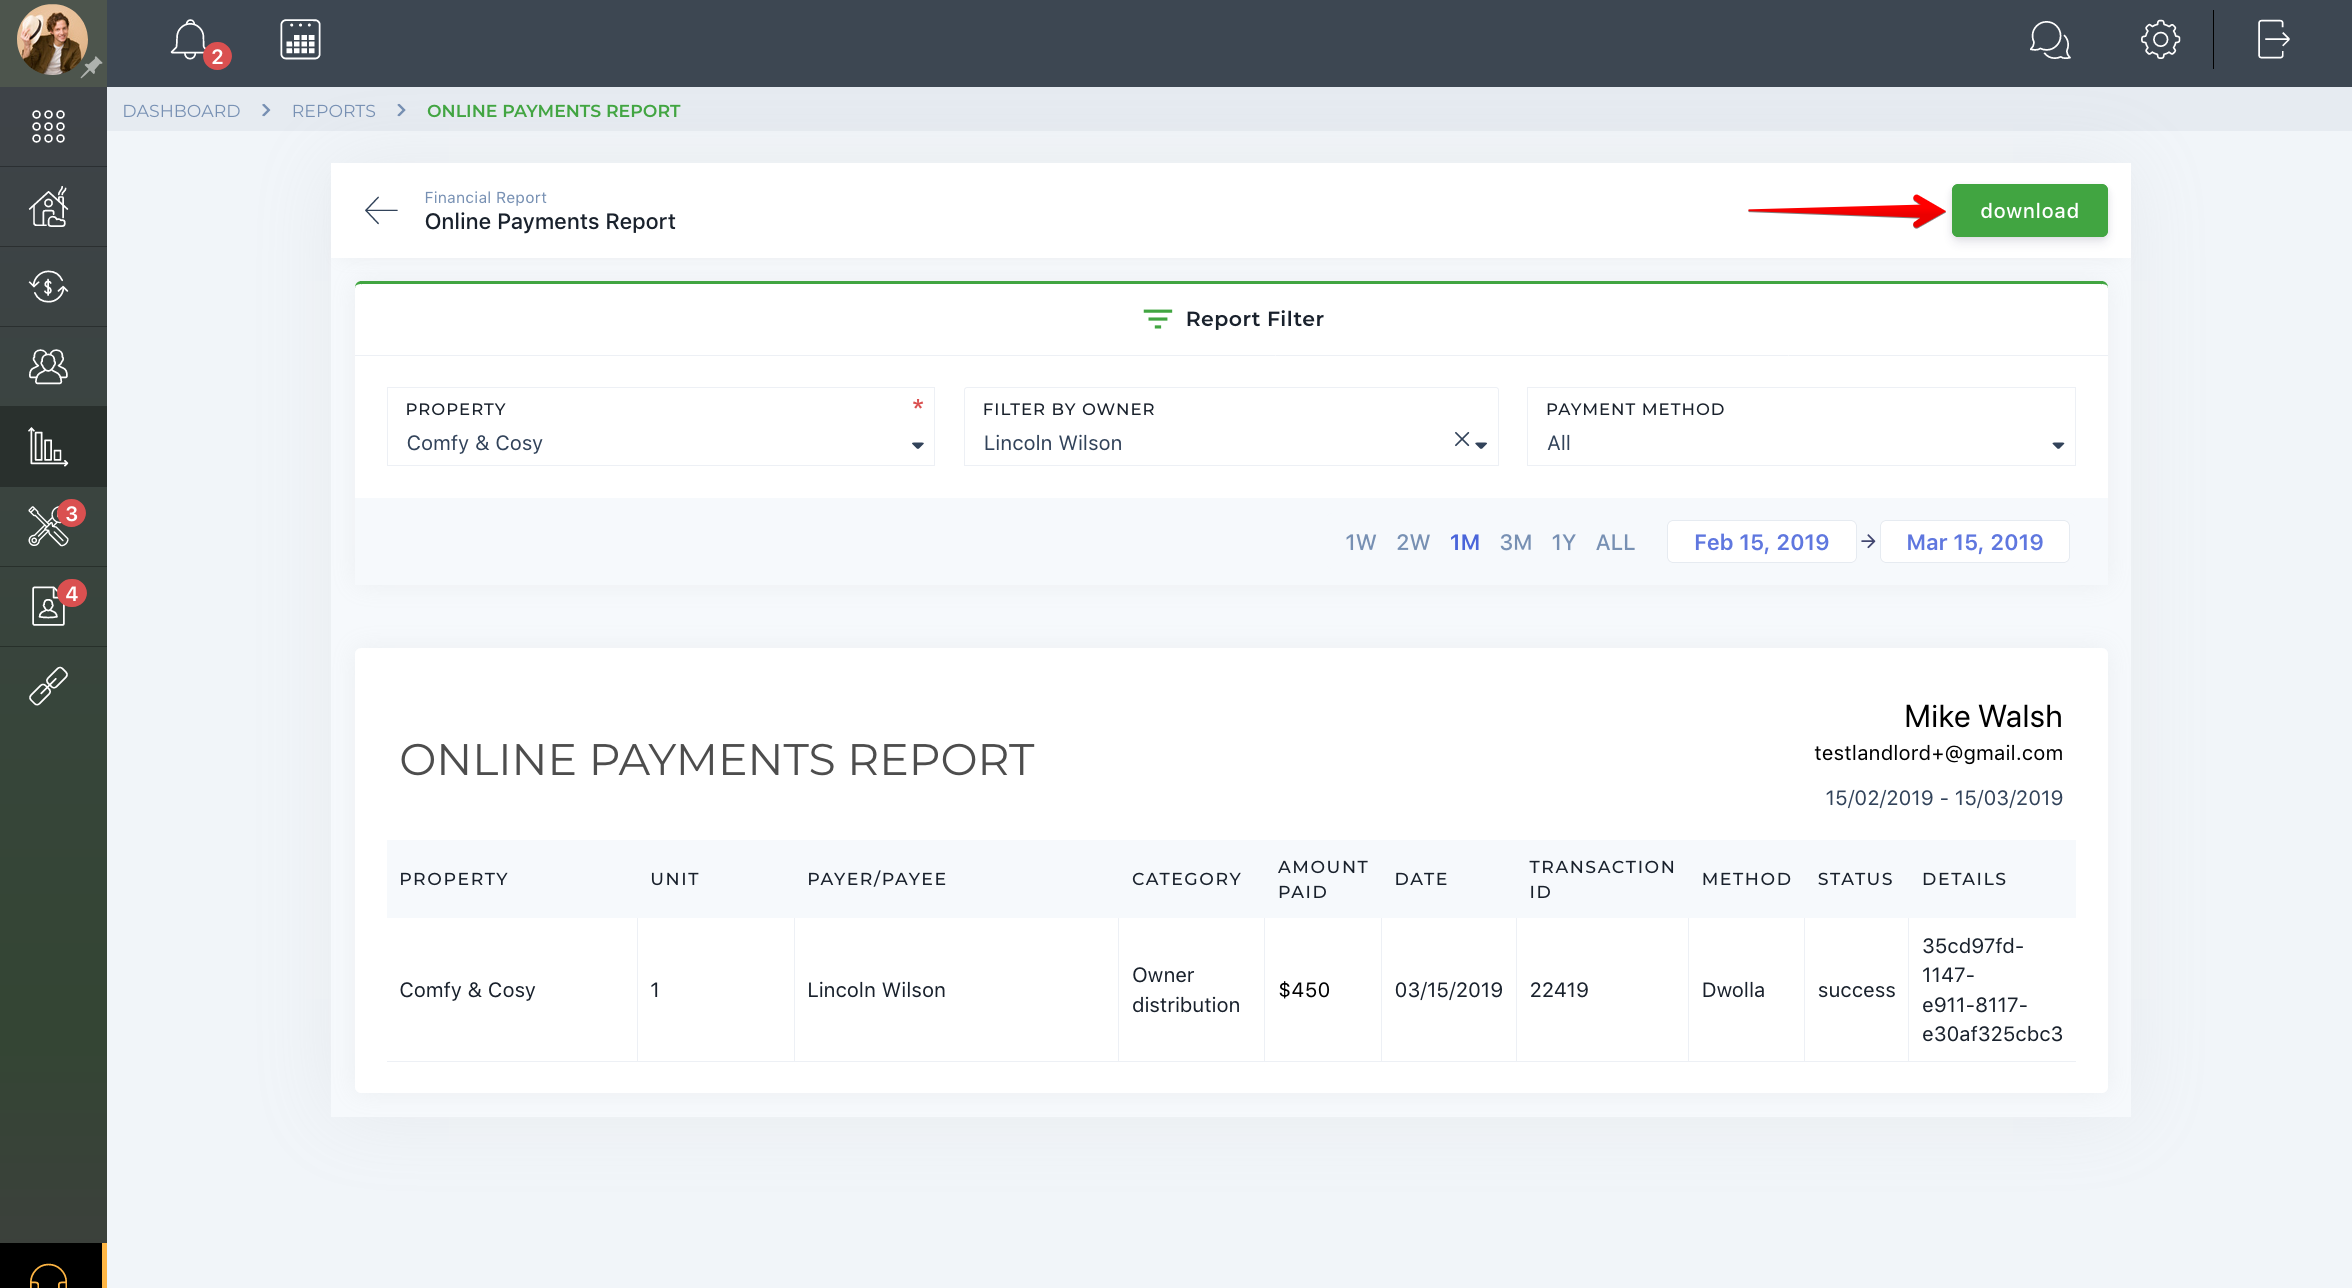 Online Payments Report